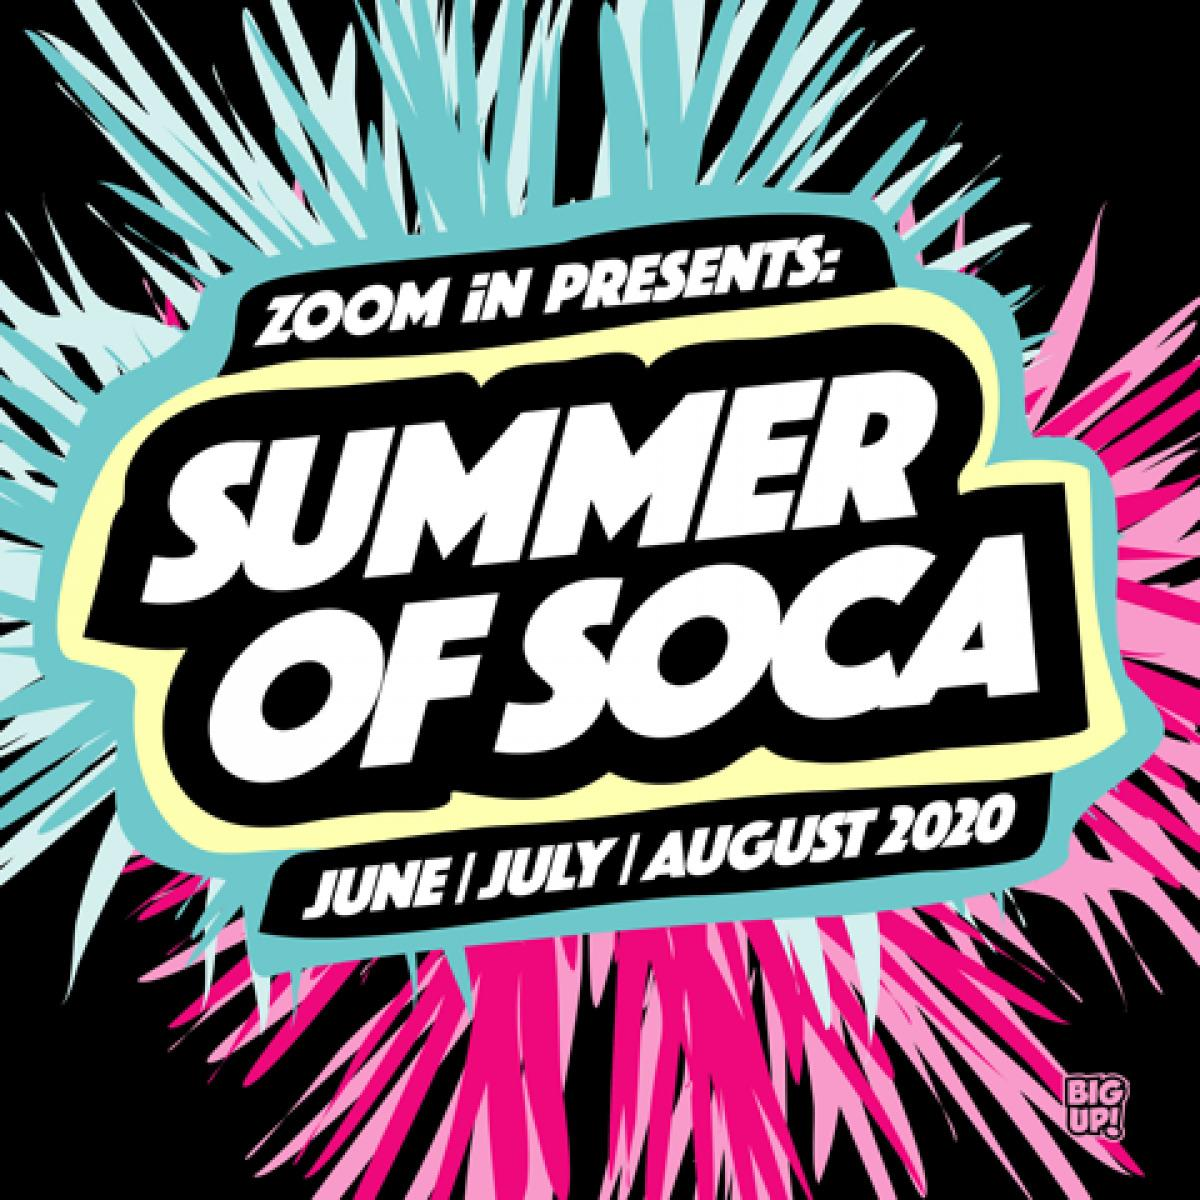 Summer Of Soca - Carnival Fever Edition flyer or graphic.